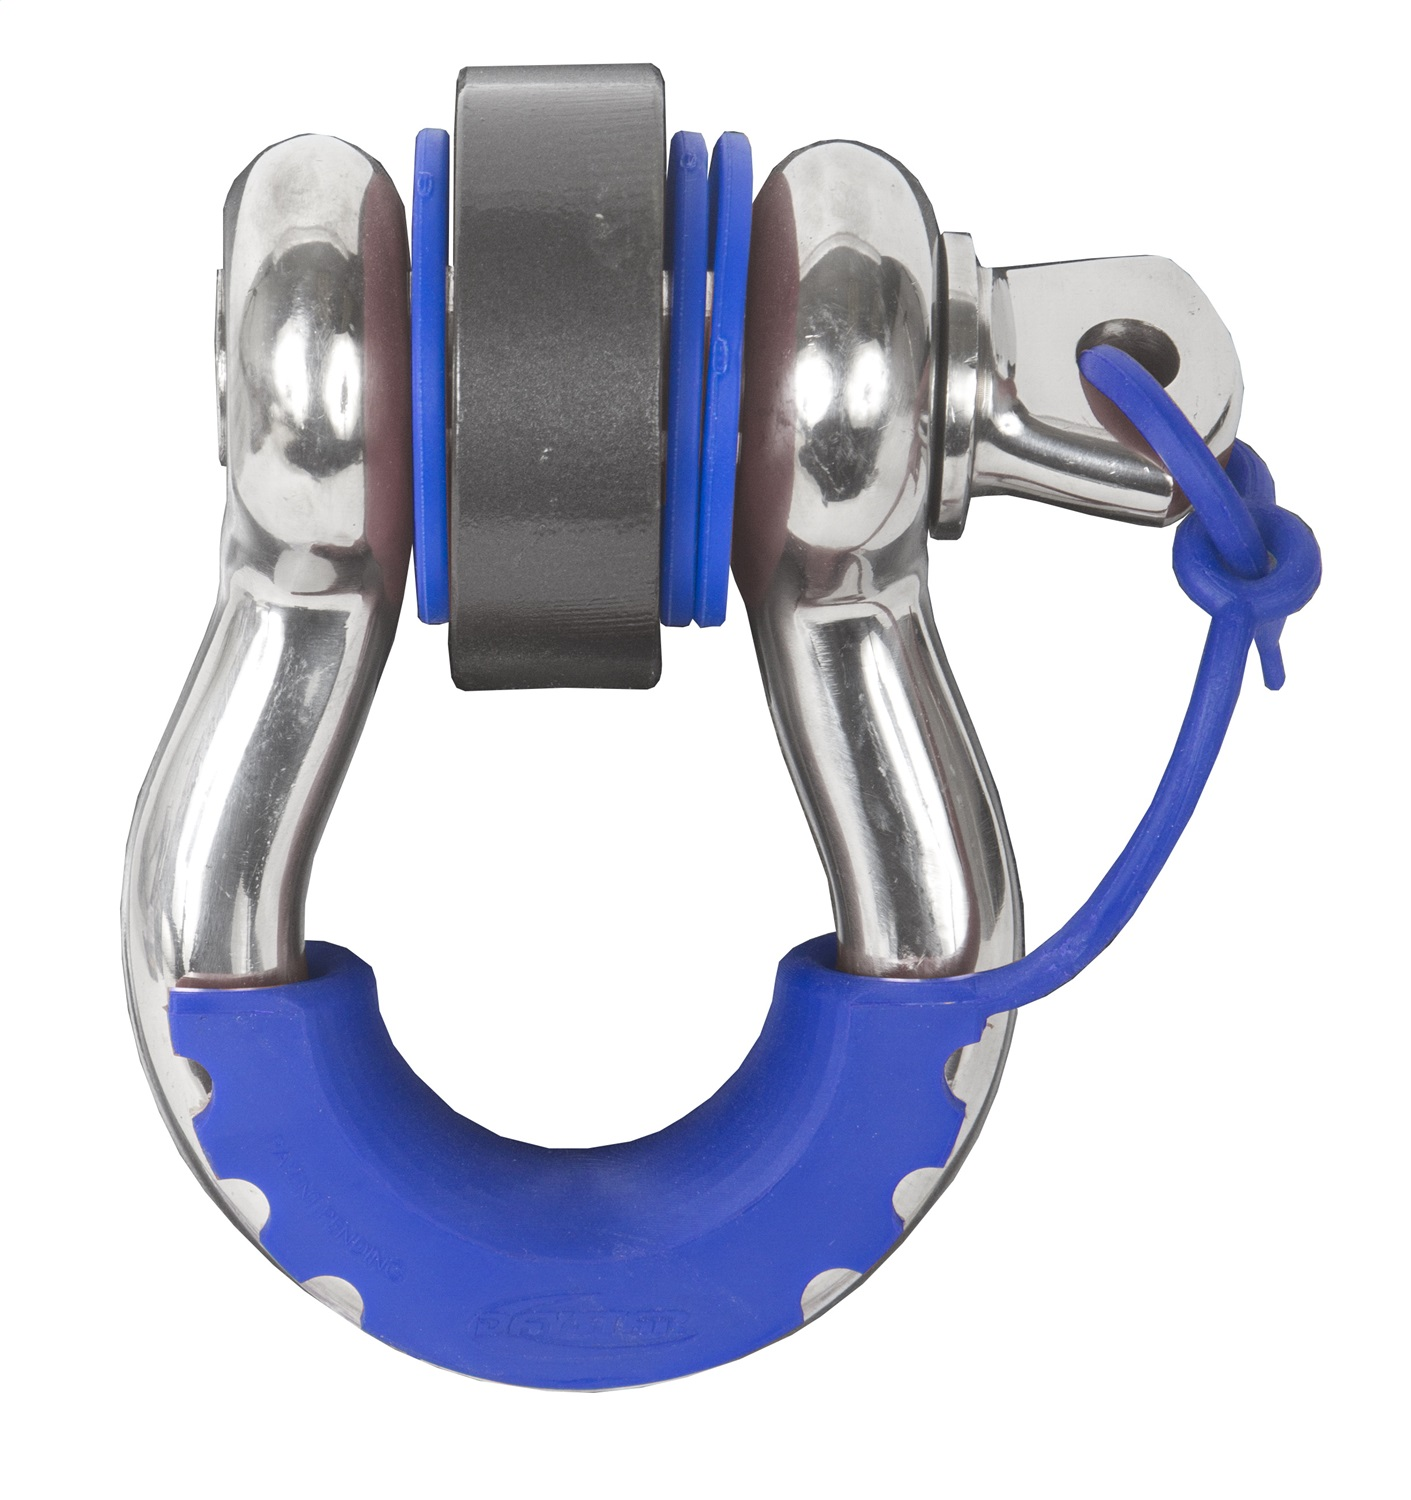 Daystar KU70058RB D-Ring Lockers And Shackle Isolators